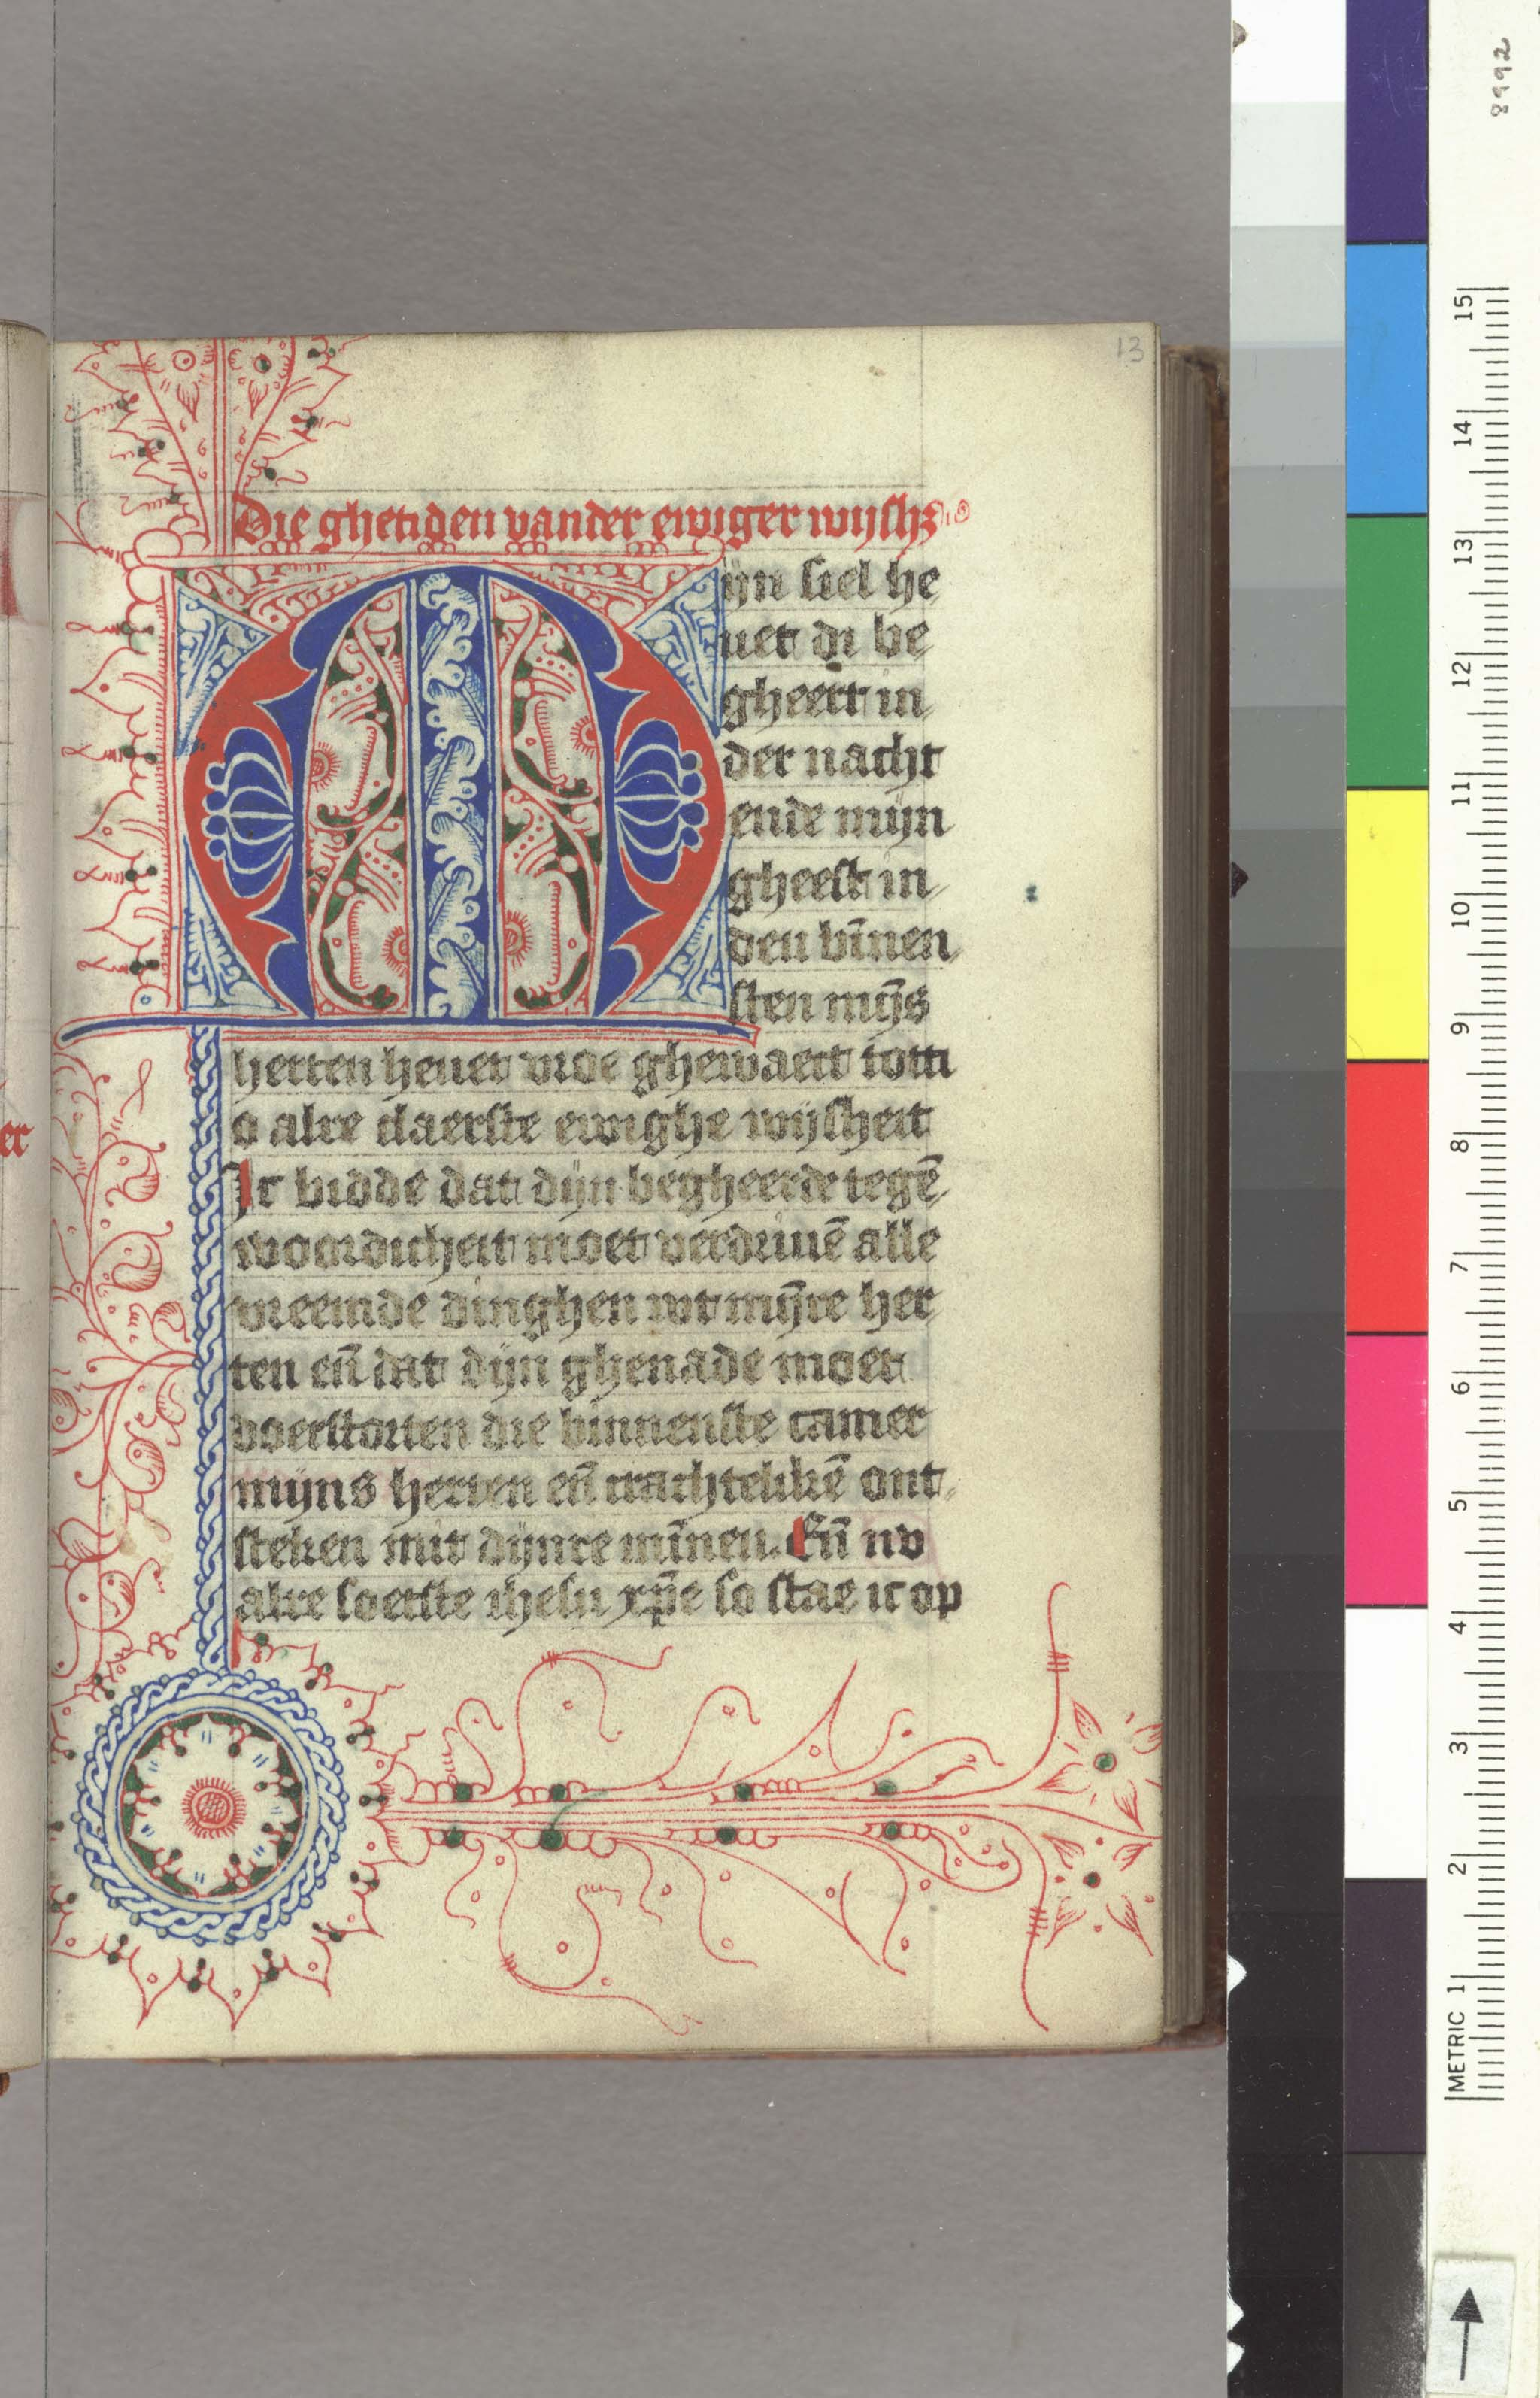 Austin, University of Texas, Harry Ransom Humanities Research Center, HRC 020, f. 13r